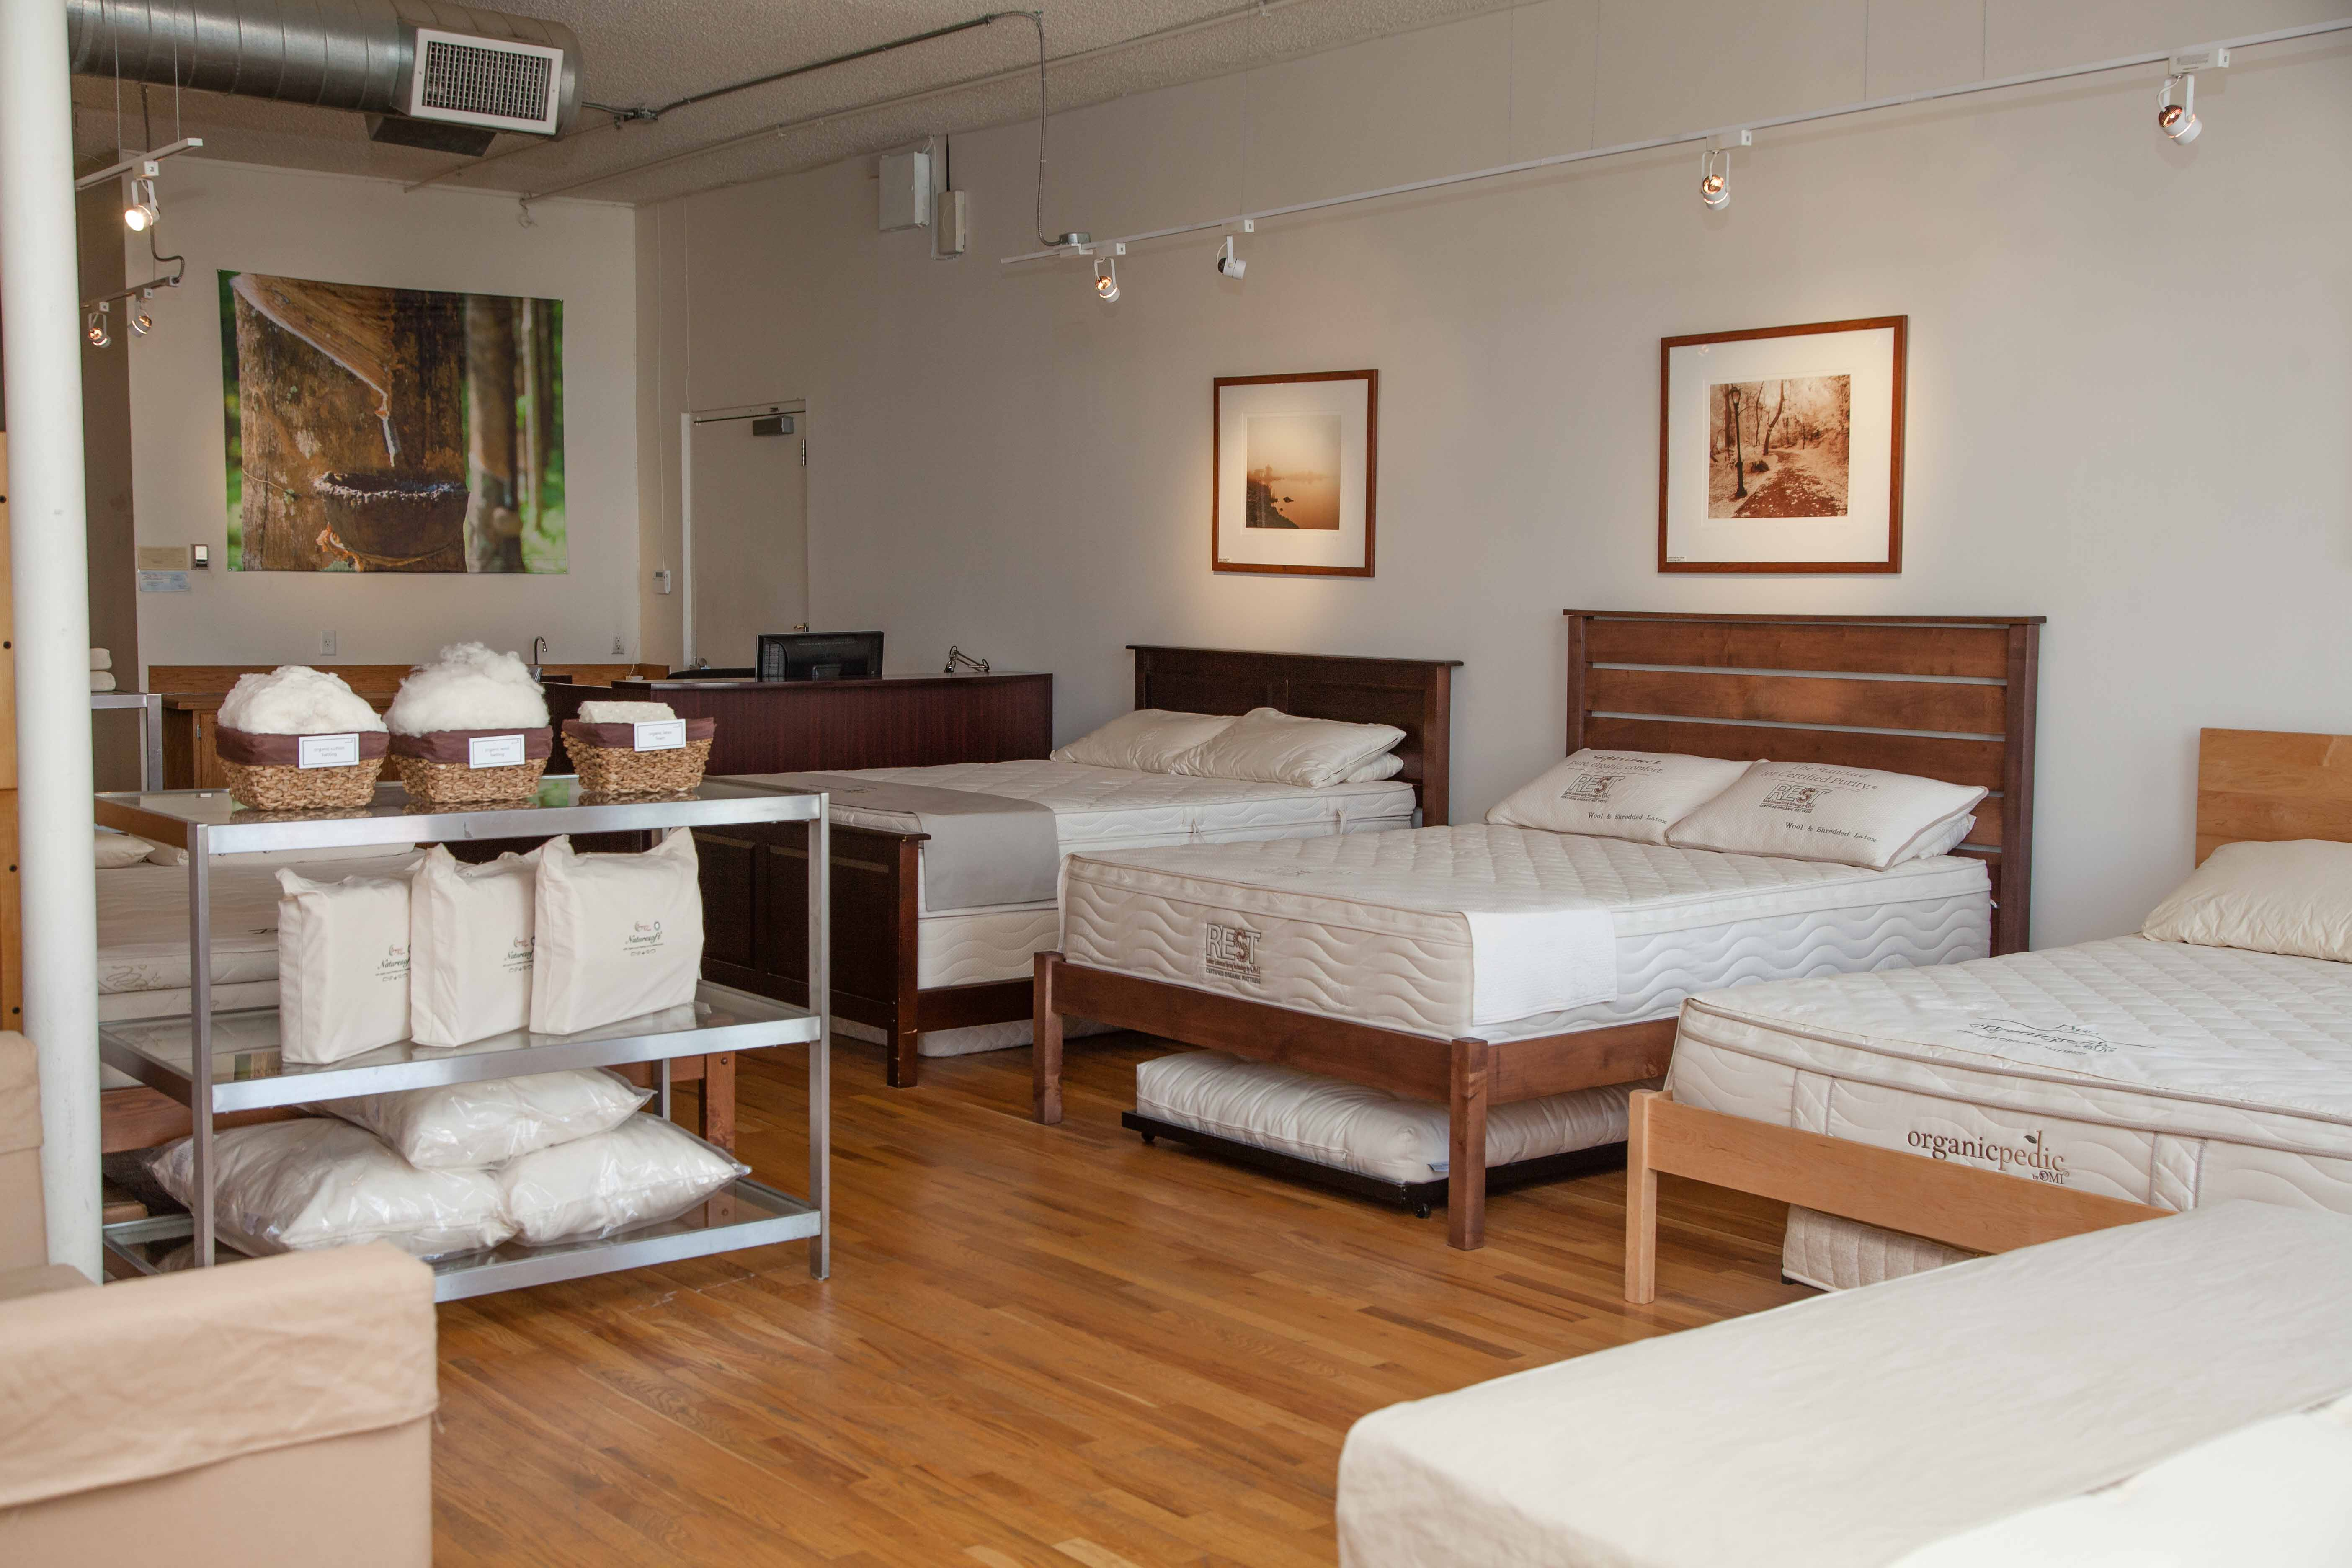 denver lampenschirm luxury furniture outlet best home elegant the store of mattress decor near lighting and metalorgtfo stores